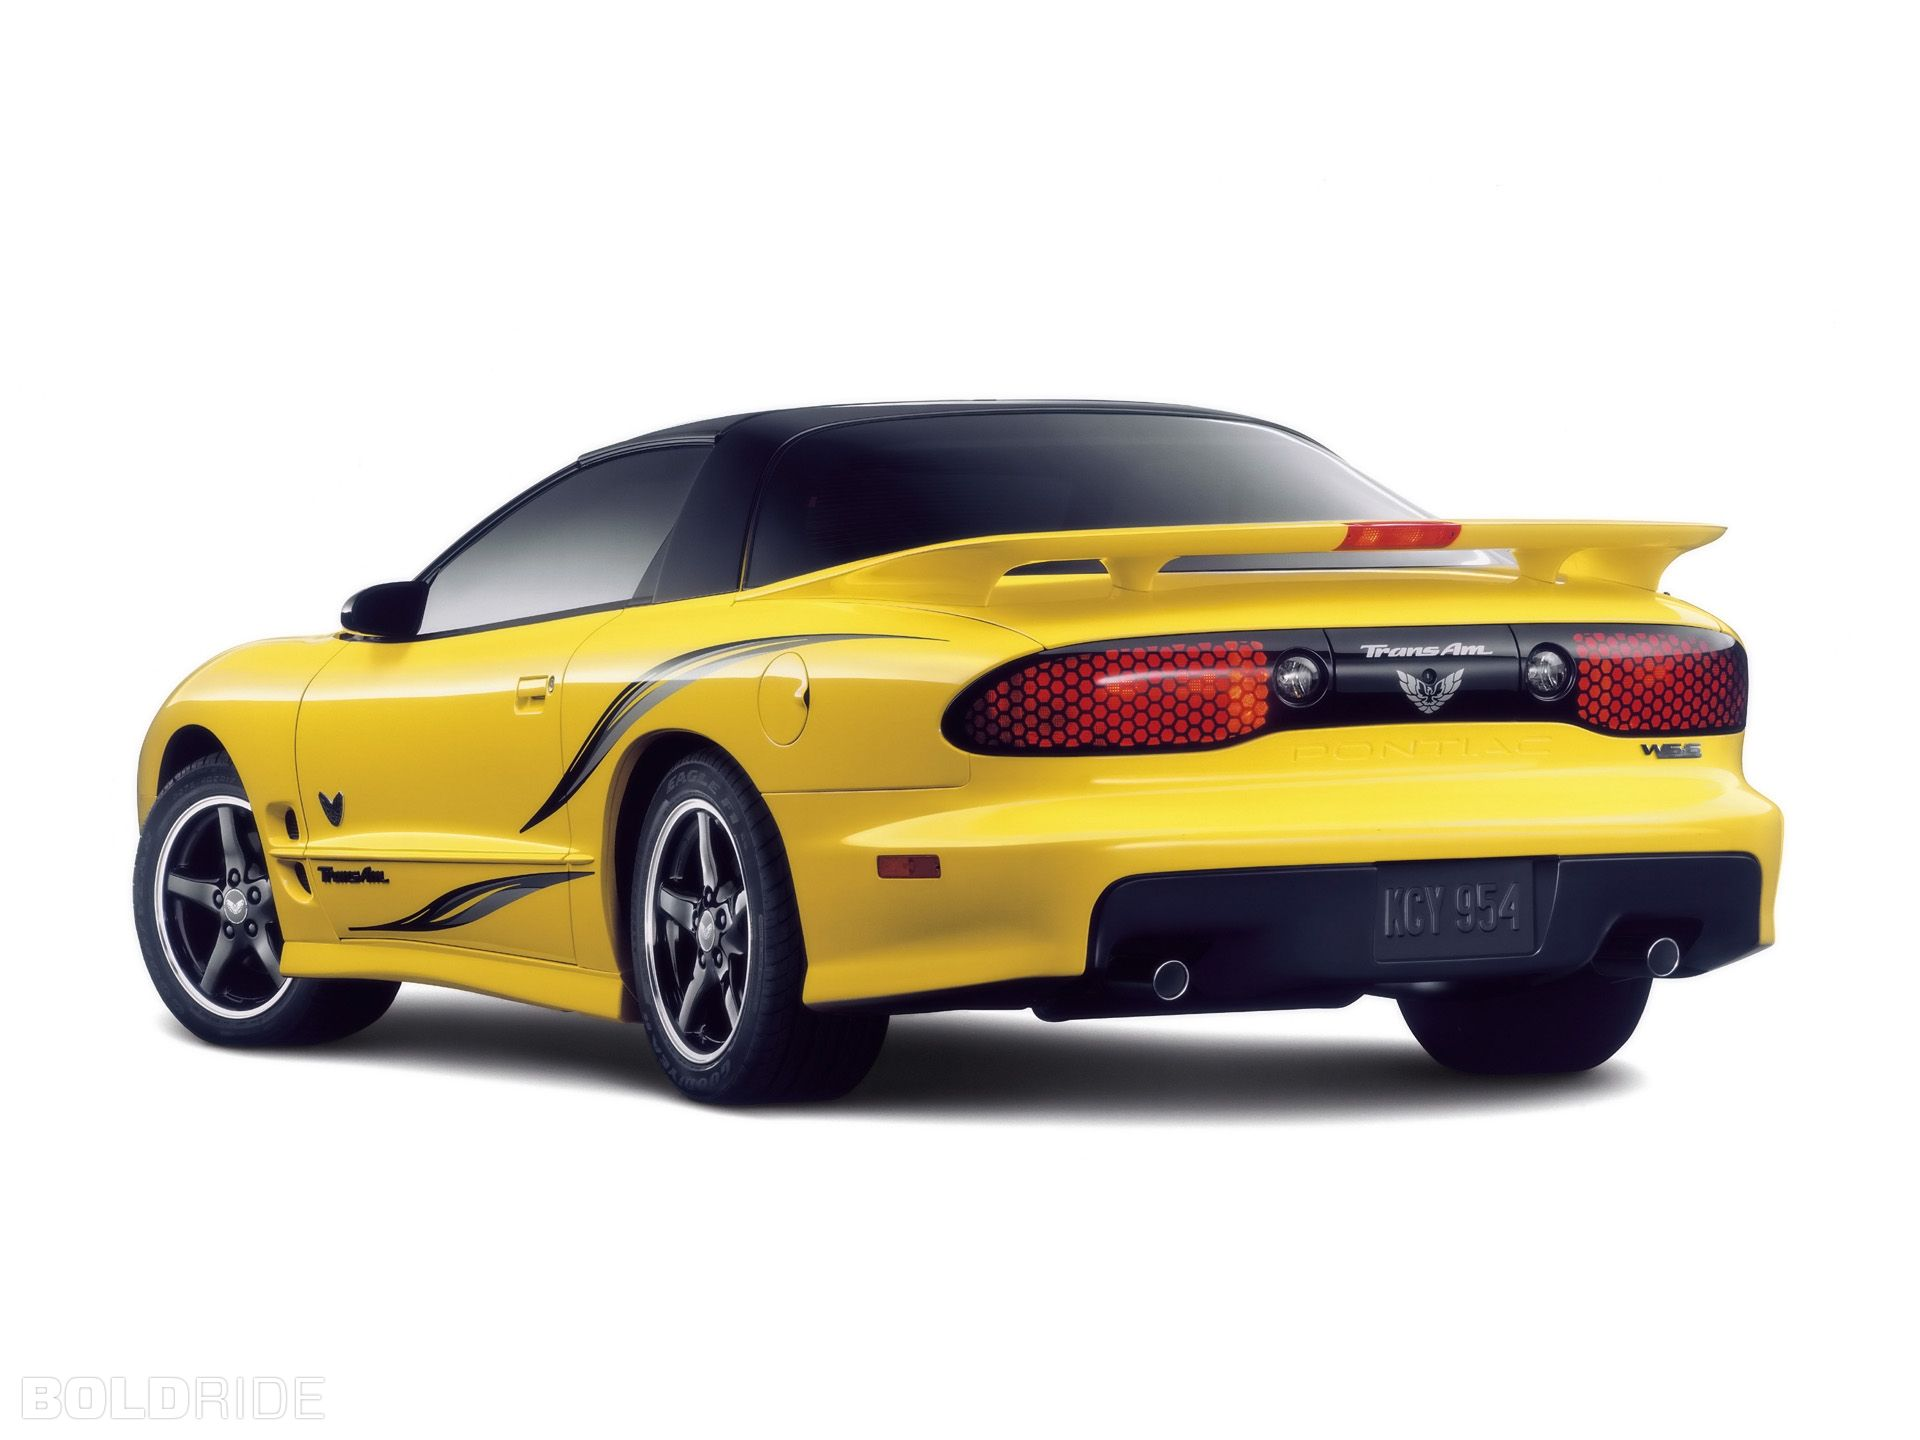 2002 pontiac firebird trans am edition images pictures and videos